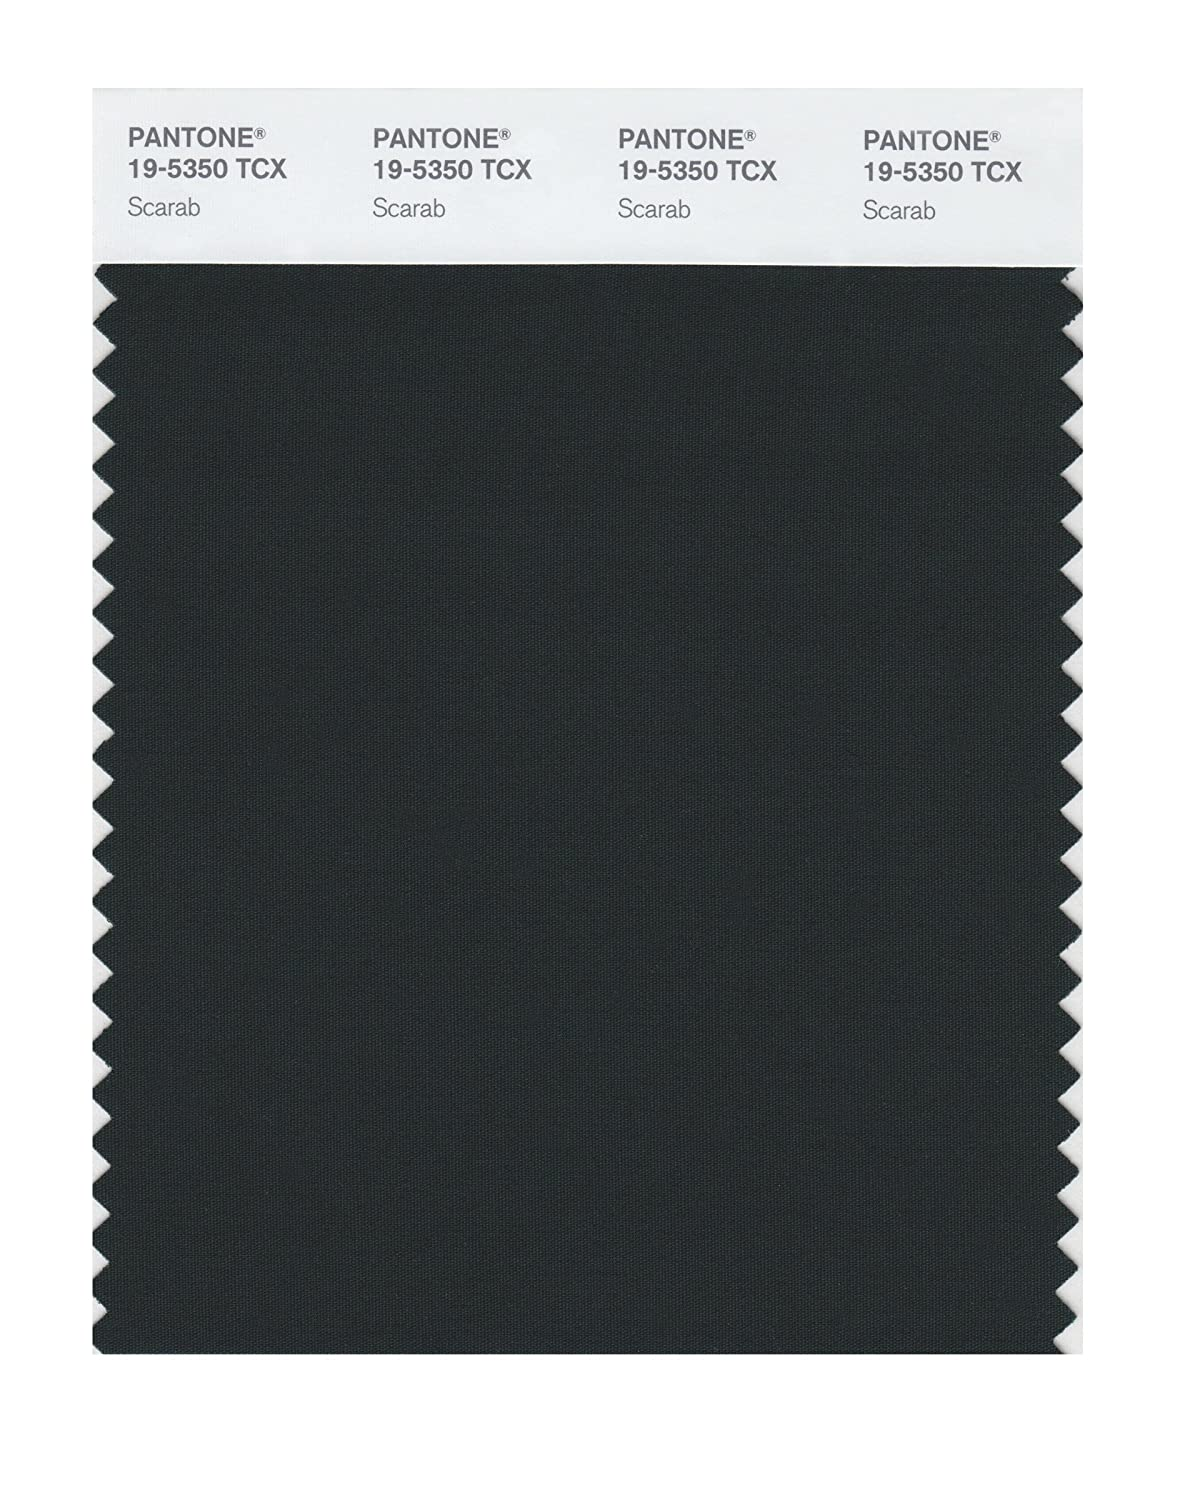 Pantone 19 5350 TCX Smart Color Swatch Card Scarab